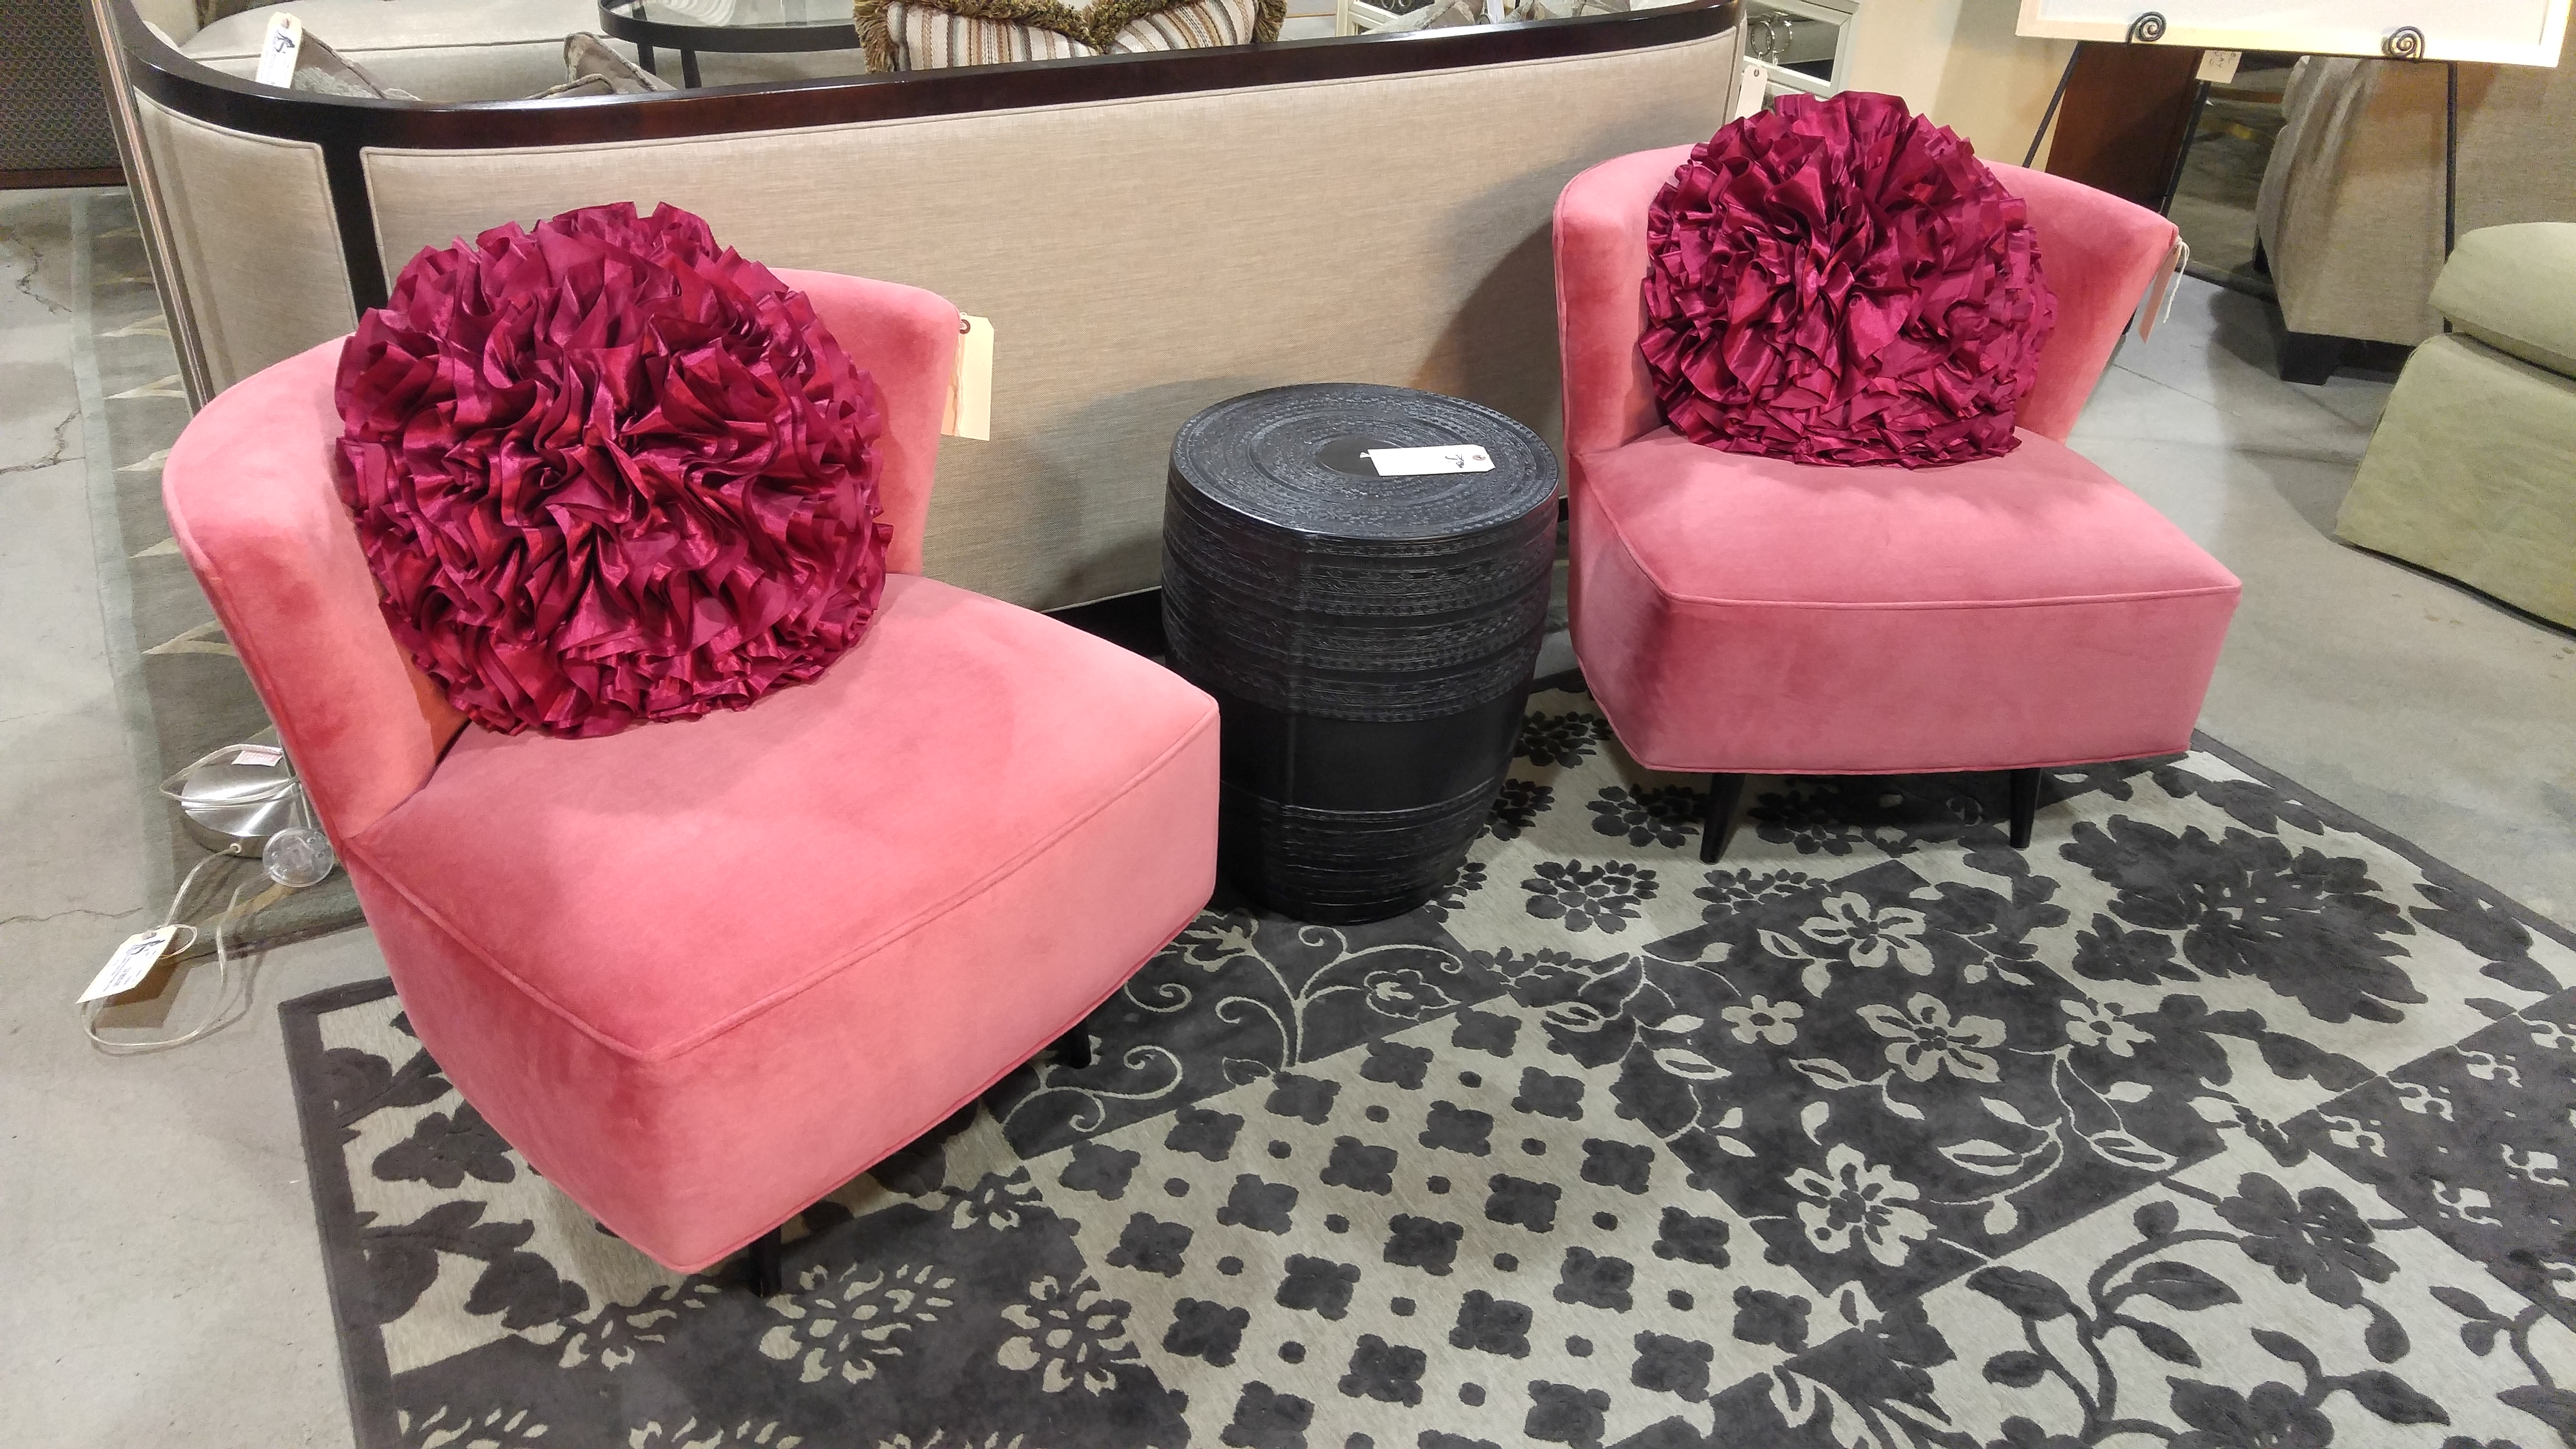 Playfully Adorable, We Have Two Peony Pink Velvet Occasional Chairs With  Espresso Wood Legs, Set On A Swivel From McCreary Modern.